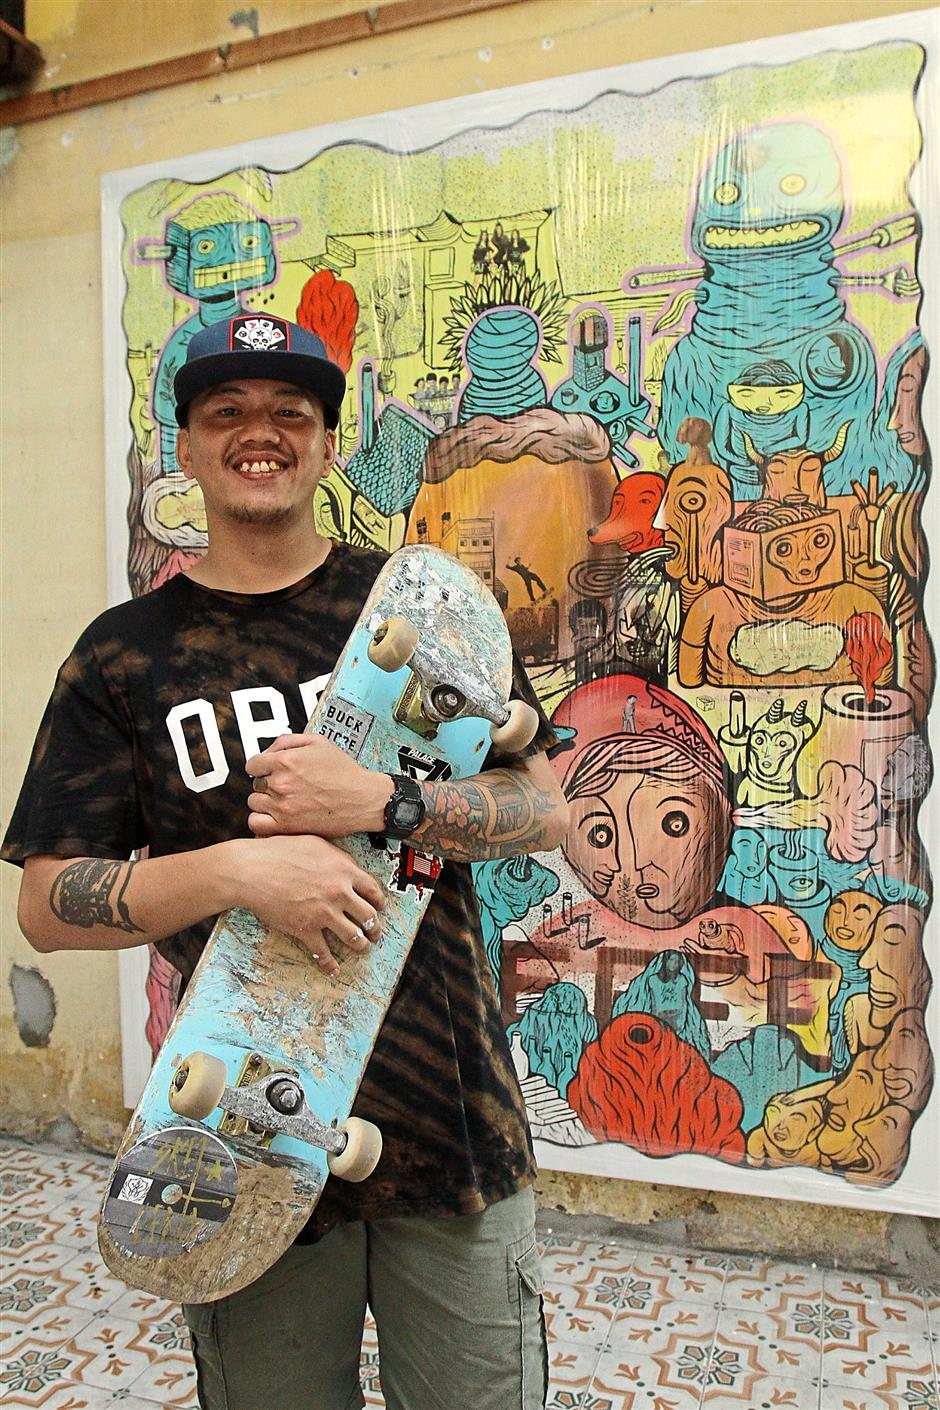 1 A participating artist setting up a skate ramp, while others go for a spin.2 Skate artist Donald Abraham Gadius Painus Munsih, better known as Yakyak, posing with his untitled piece depicting worldly distractions beyond a skateboard park.